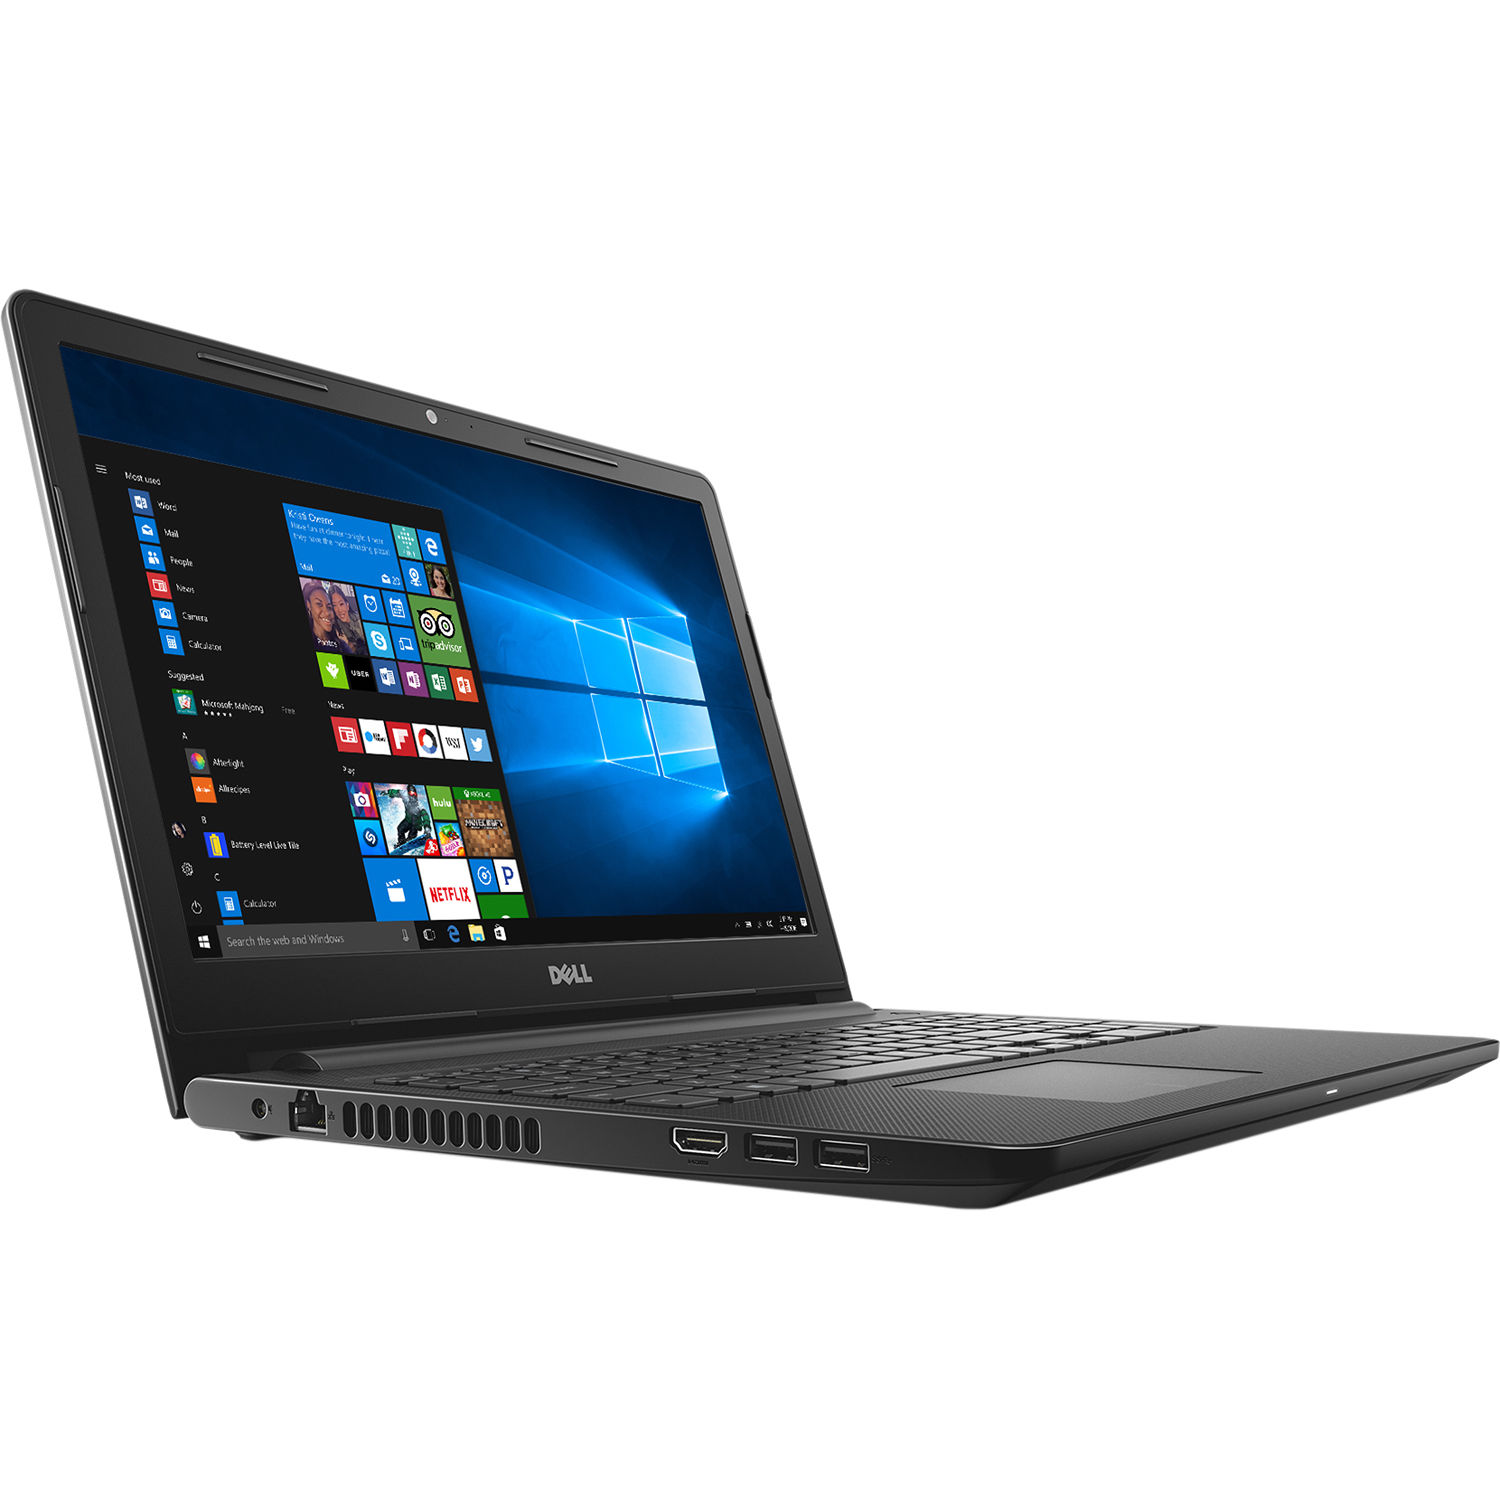 dell inspiron 15 network controller driver for windows 8